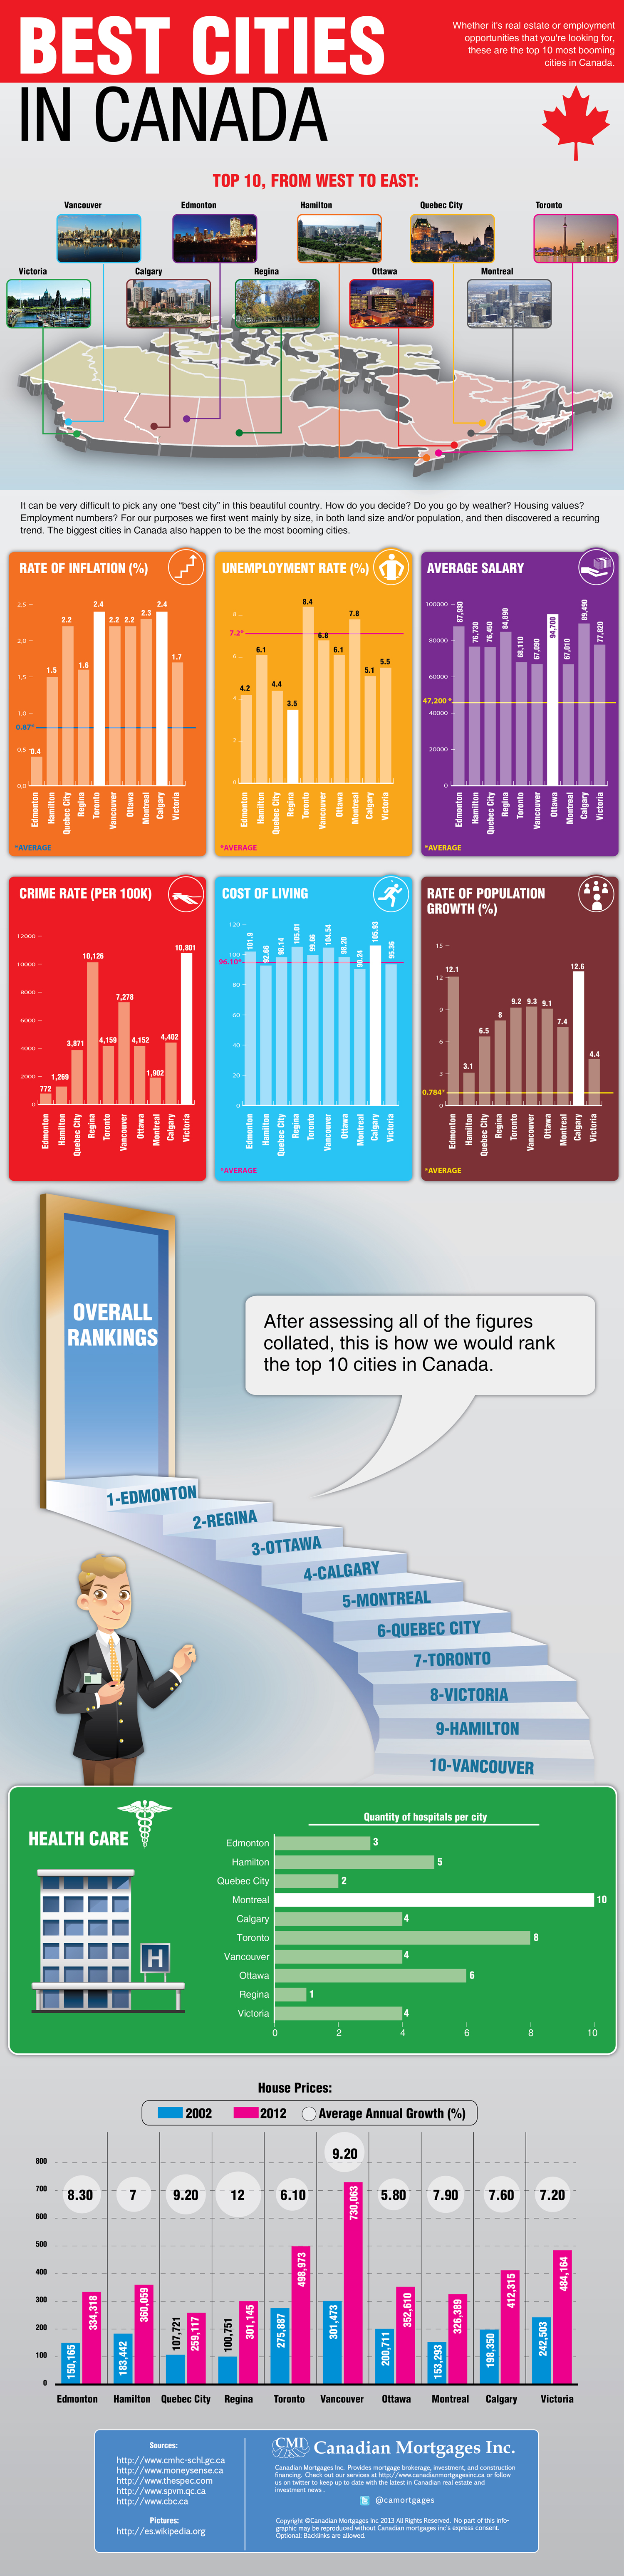 Top 10 Places to Live in Canada (Infographic) - Canadian Mortgages Inc.